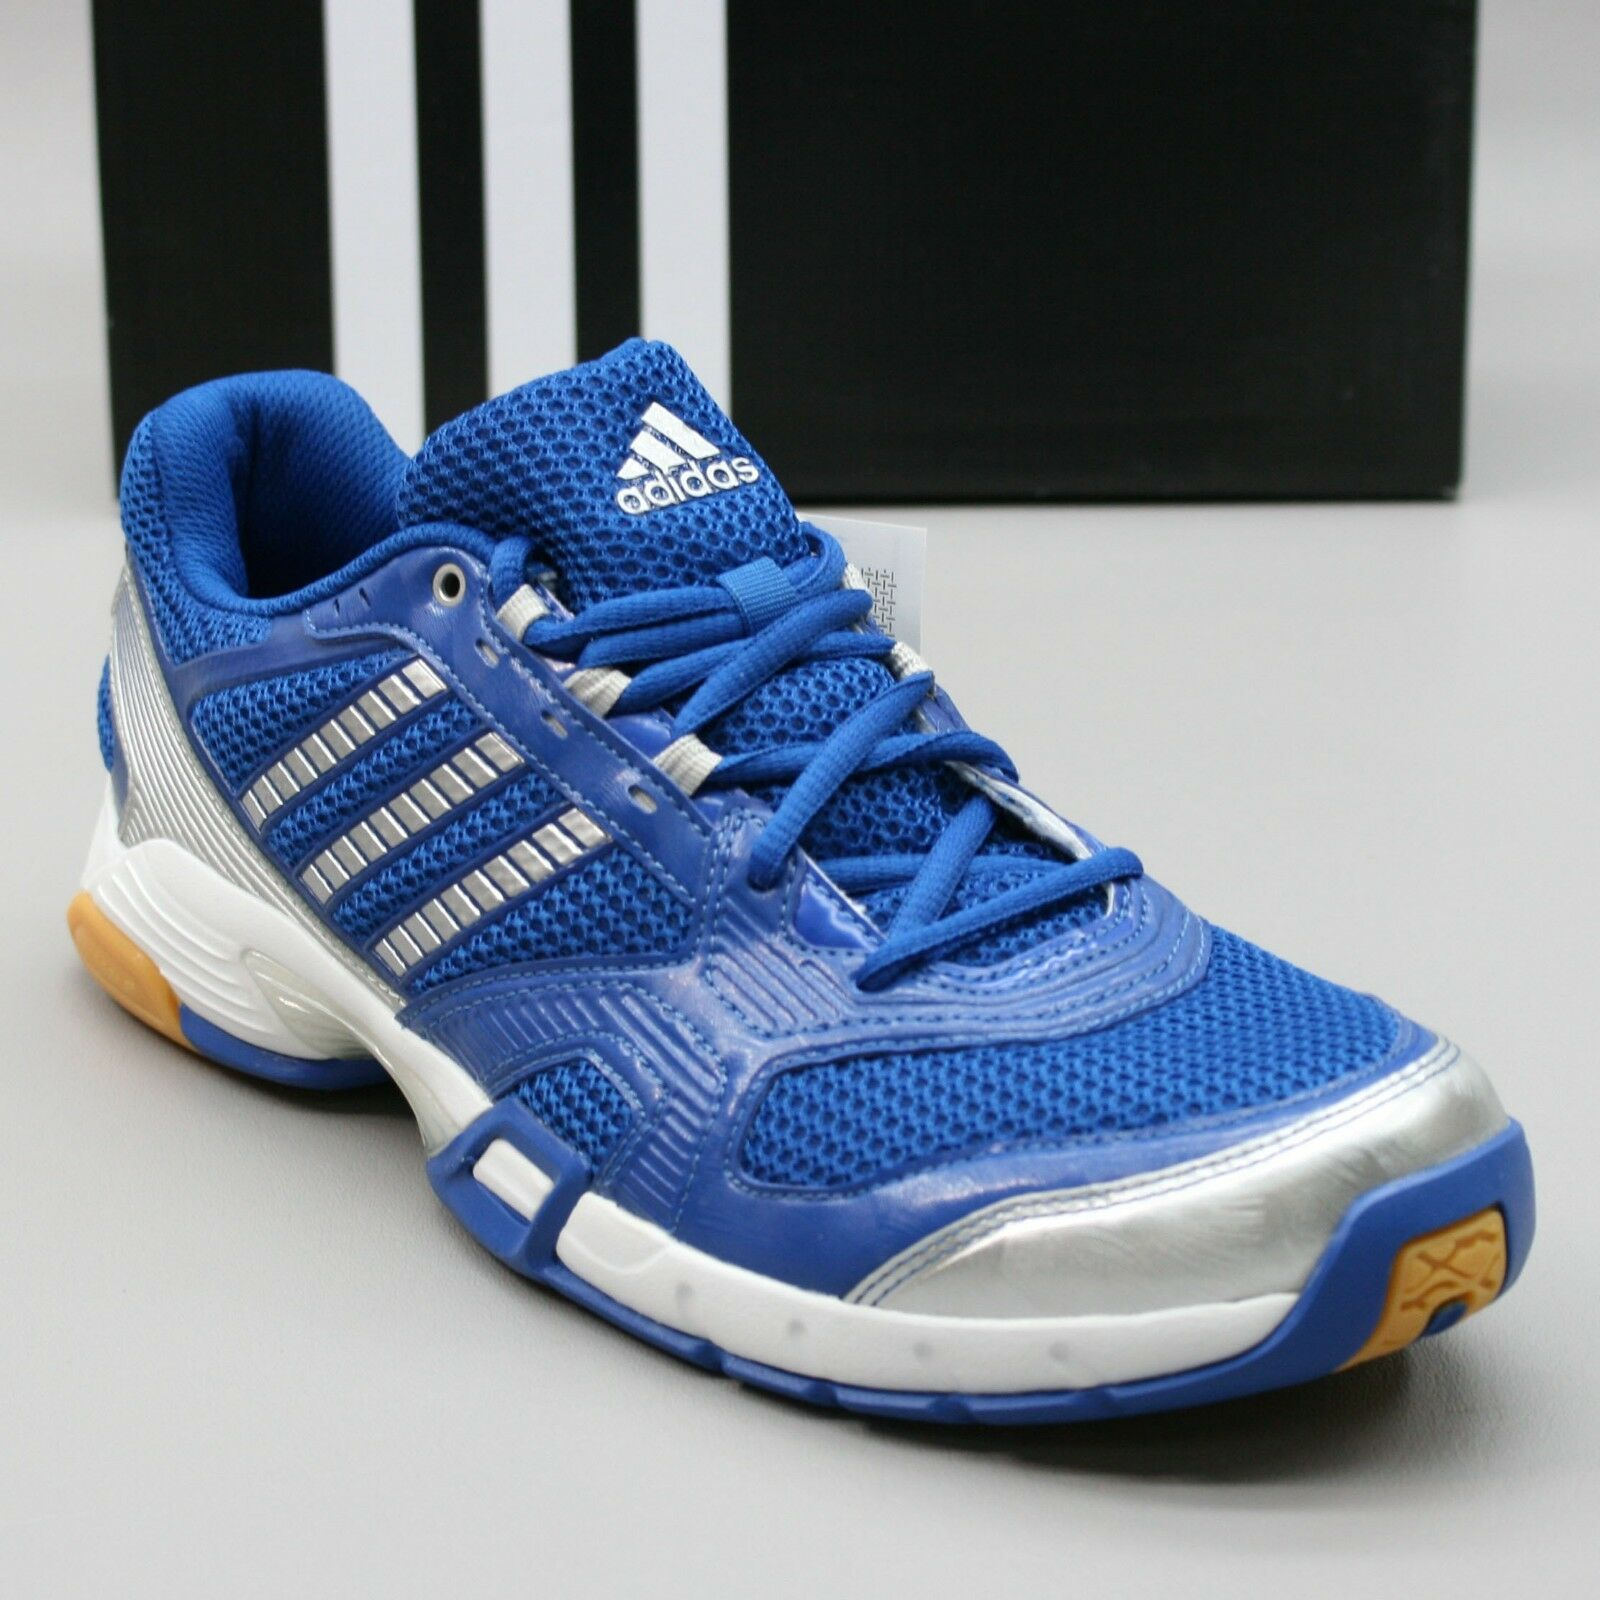 NEW Adidas Ladies 11.5 Opticourt VB 8.5 W Blue Volleyball Indoor Court Sneakers